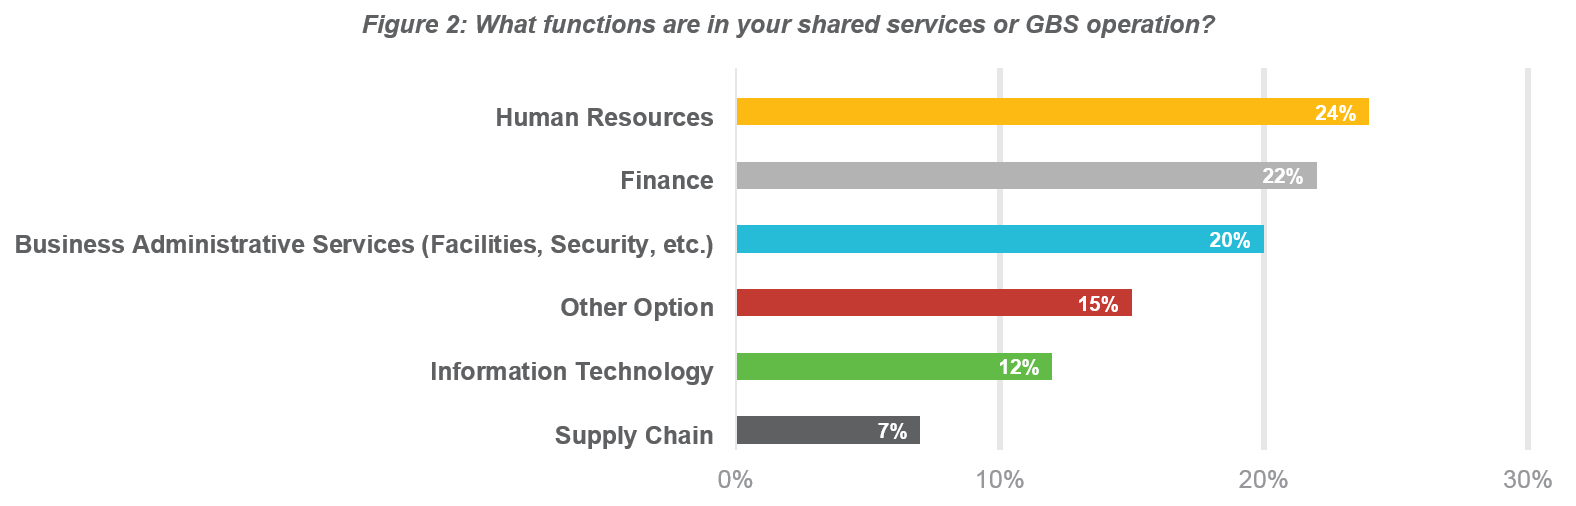 Scottmadden survey results todays shared services and global as evidenced by the survey results many organizations have adopted the concept of shared services and gbs to deliver competitive advantage through scale publicscrutiny Gallery